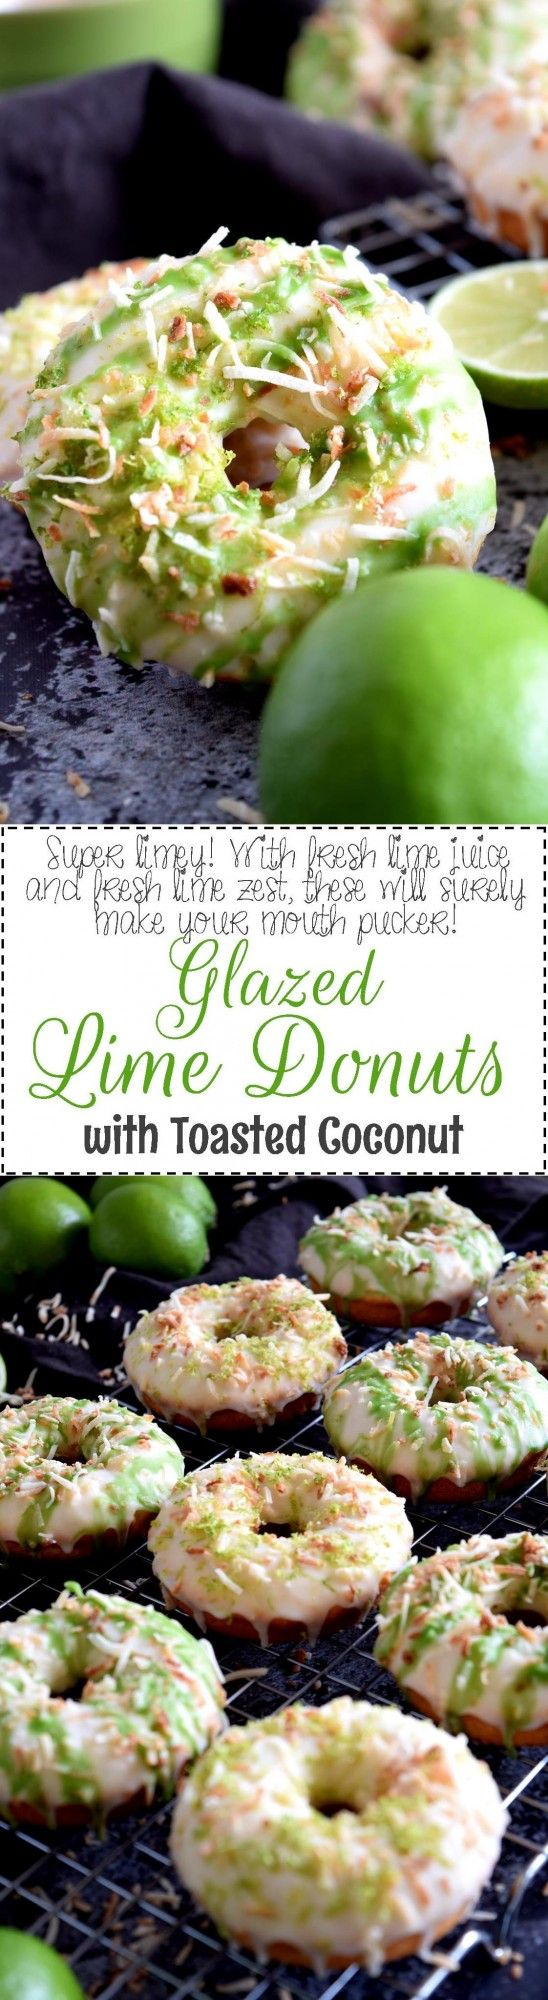 Glazed Lime Donuts with Toasted Coconut - Lord Byron's Kitchen